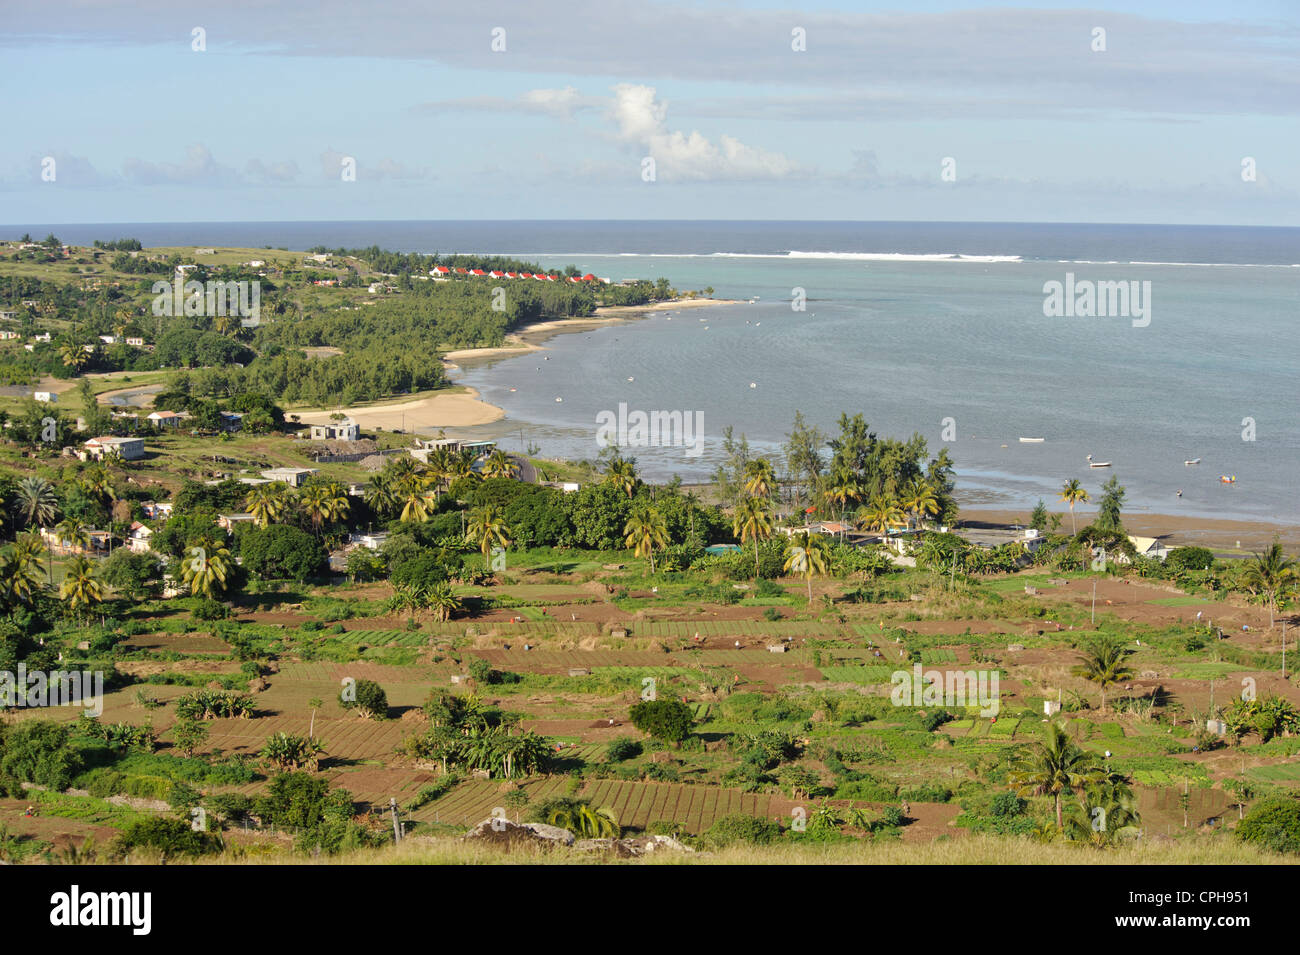 Maurice, Mauritius, Africa, Indian ocean, neighboring island Rodrigues, Rodrigues, scenery, sea - Stock Image